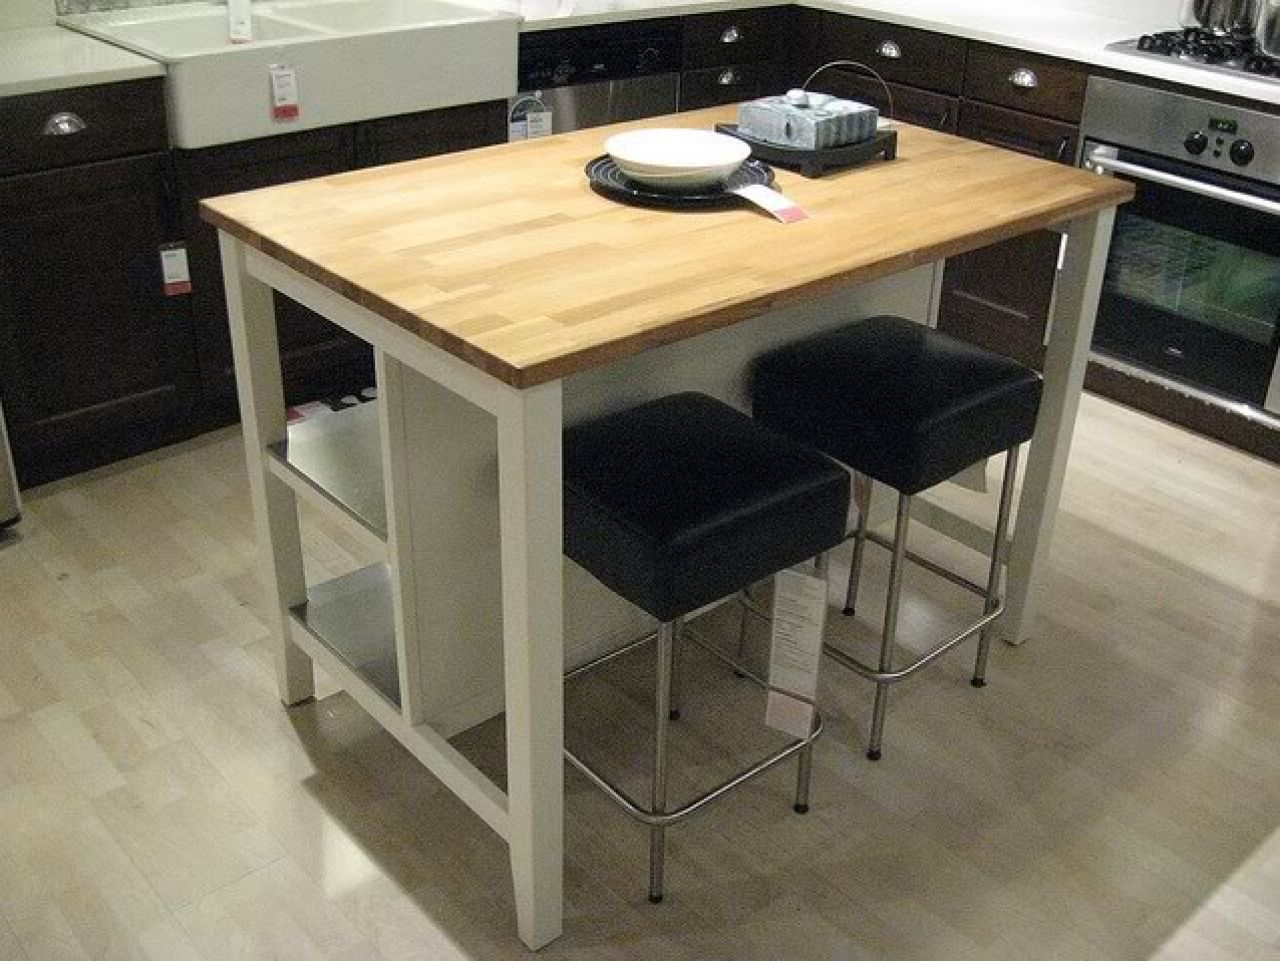 Island Küche Kitchen Island Ikea 1 Amazing Pictures Kitchen Islands